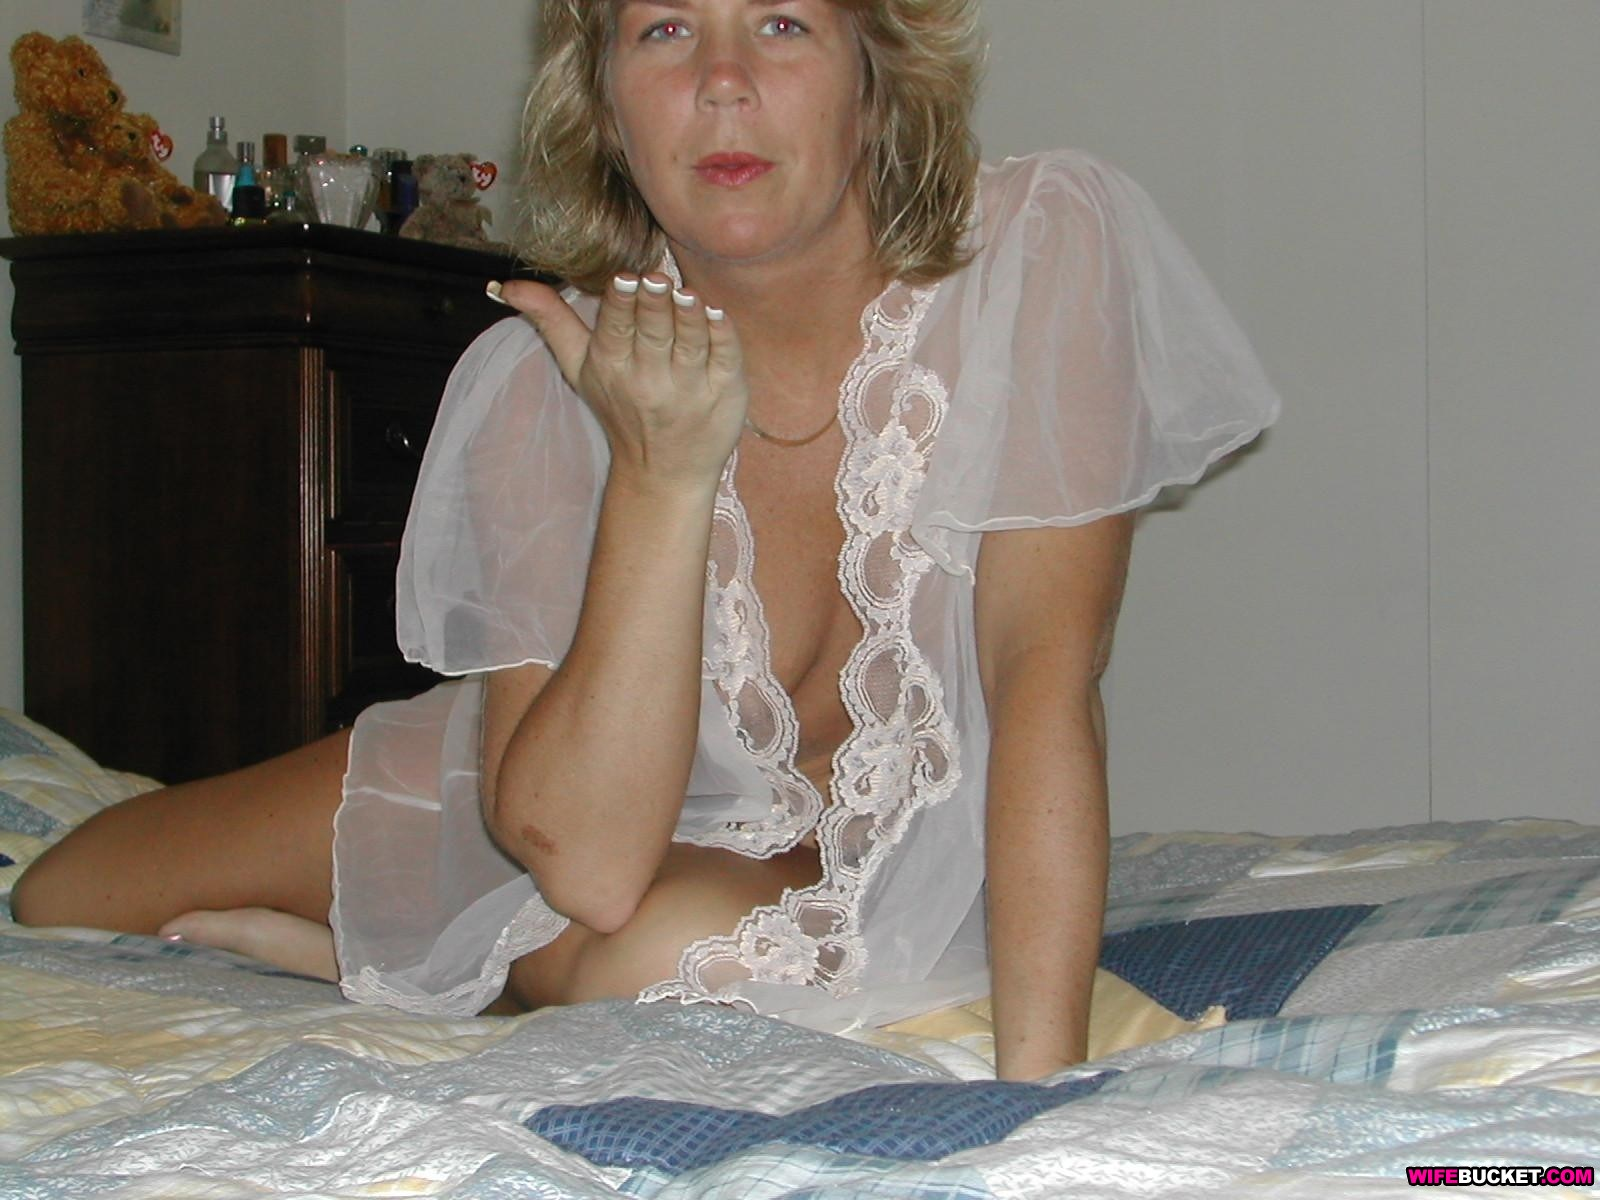 ... to put this - 180,000 photos and 4,500 videos of real amateur MILFs